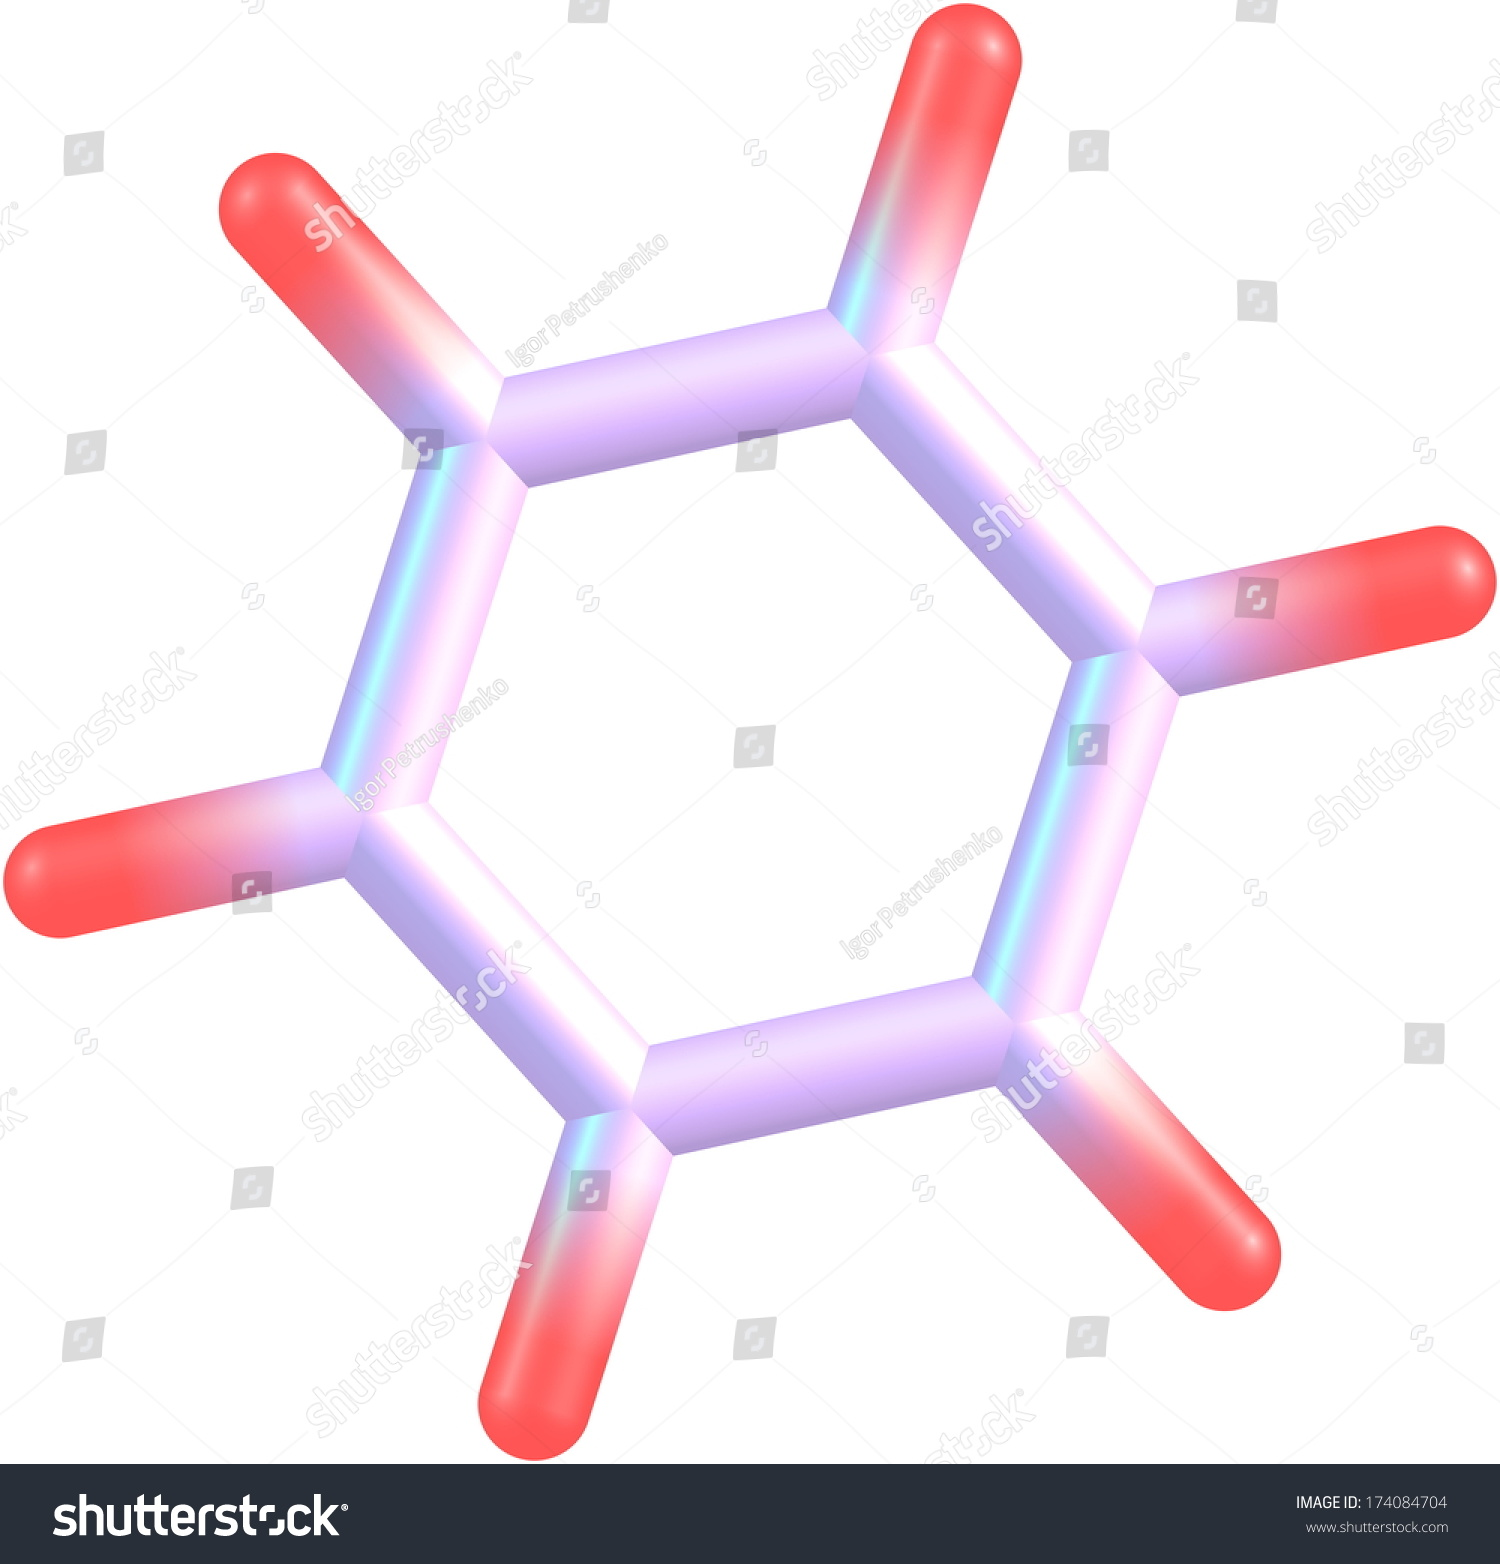 benzene and organic chemical compound What is benzene benzene is an organic chemical compound widely used in the  united states it ranks in the top 20 chemicals for production volume, and is.